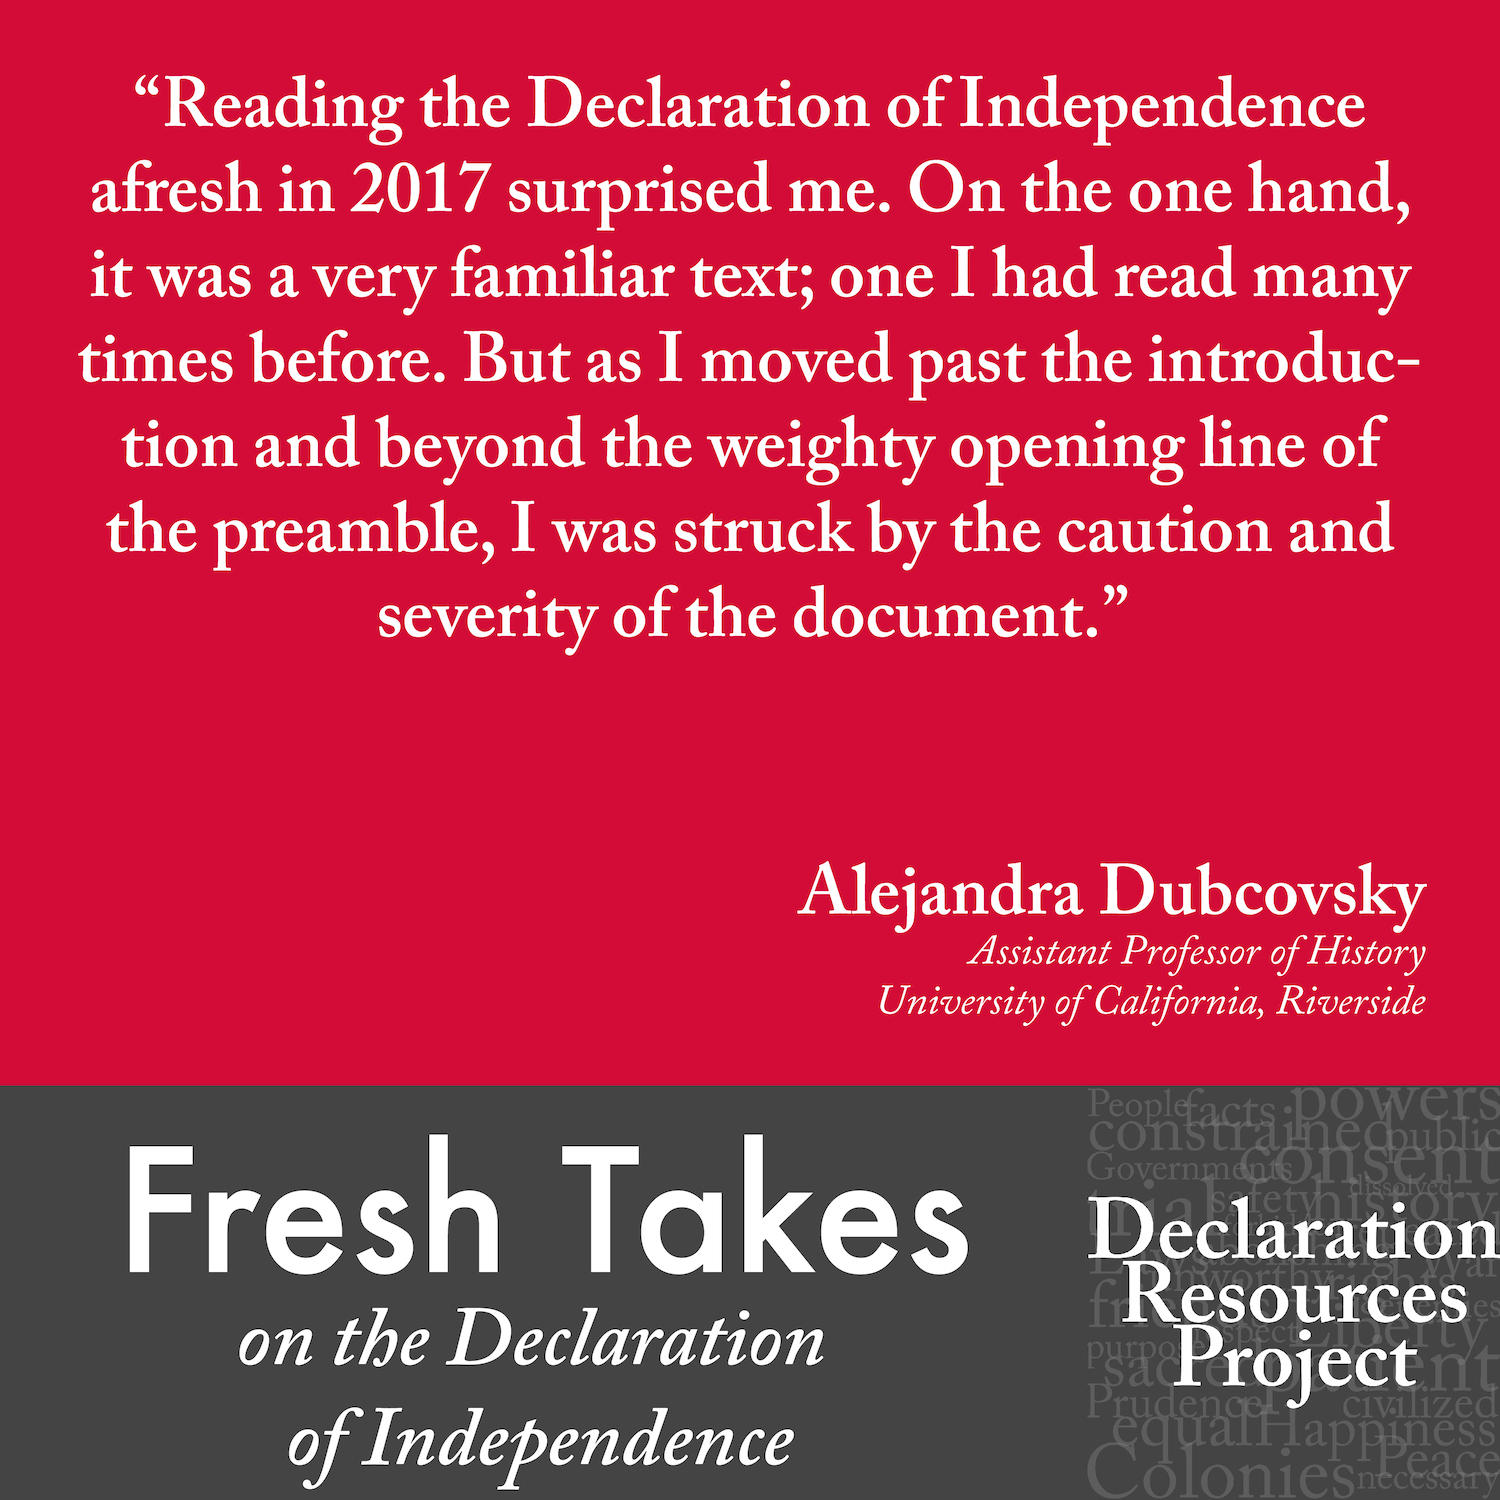 Alejandra Dubcovsky's Fresh Take on the Declaration of Independence